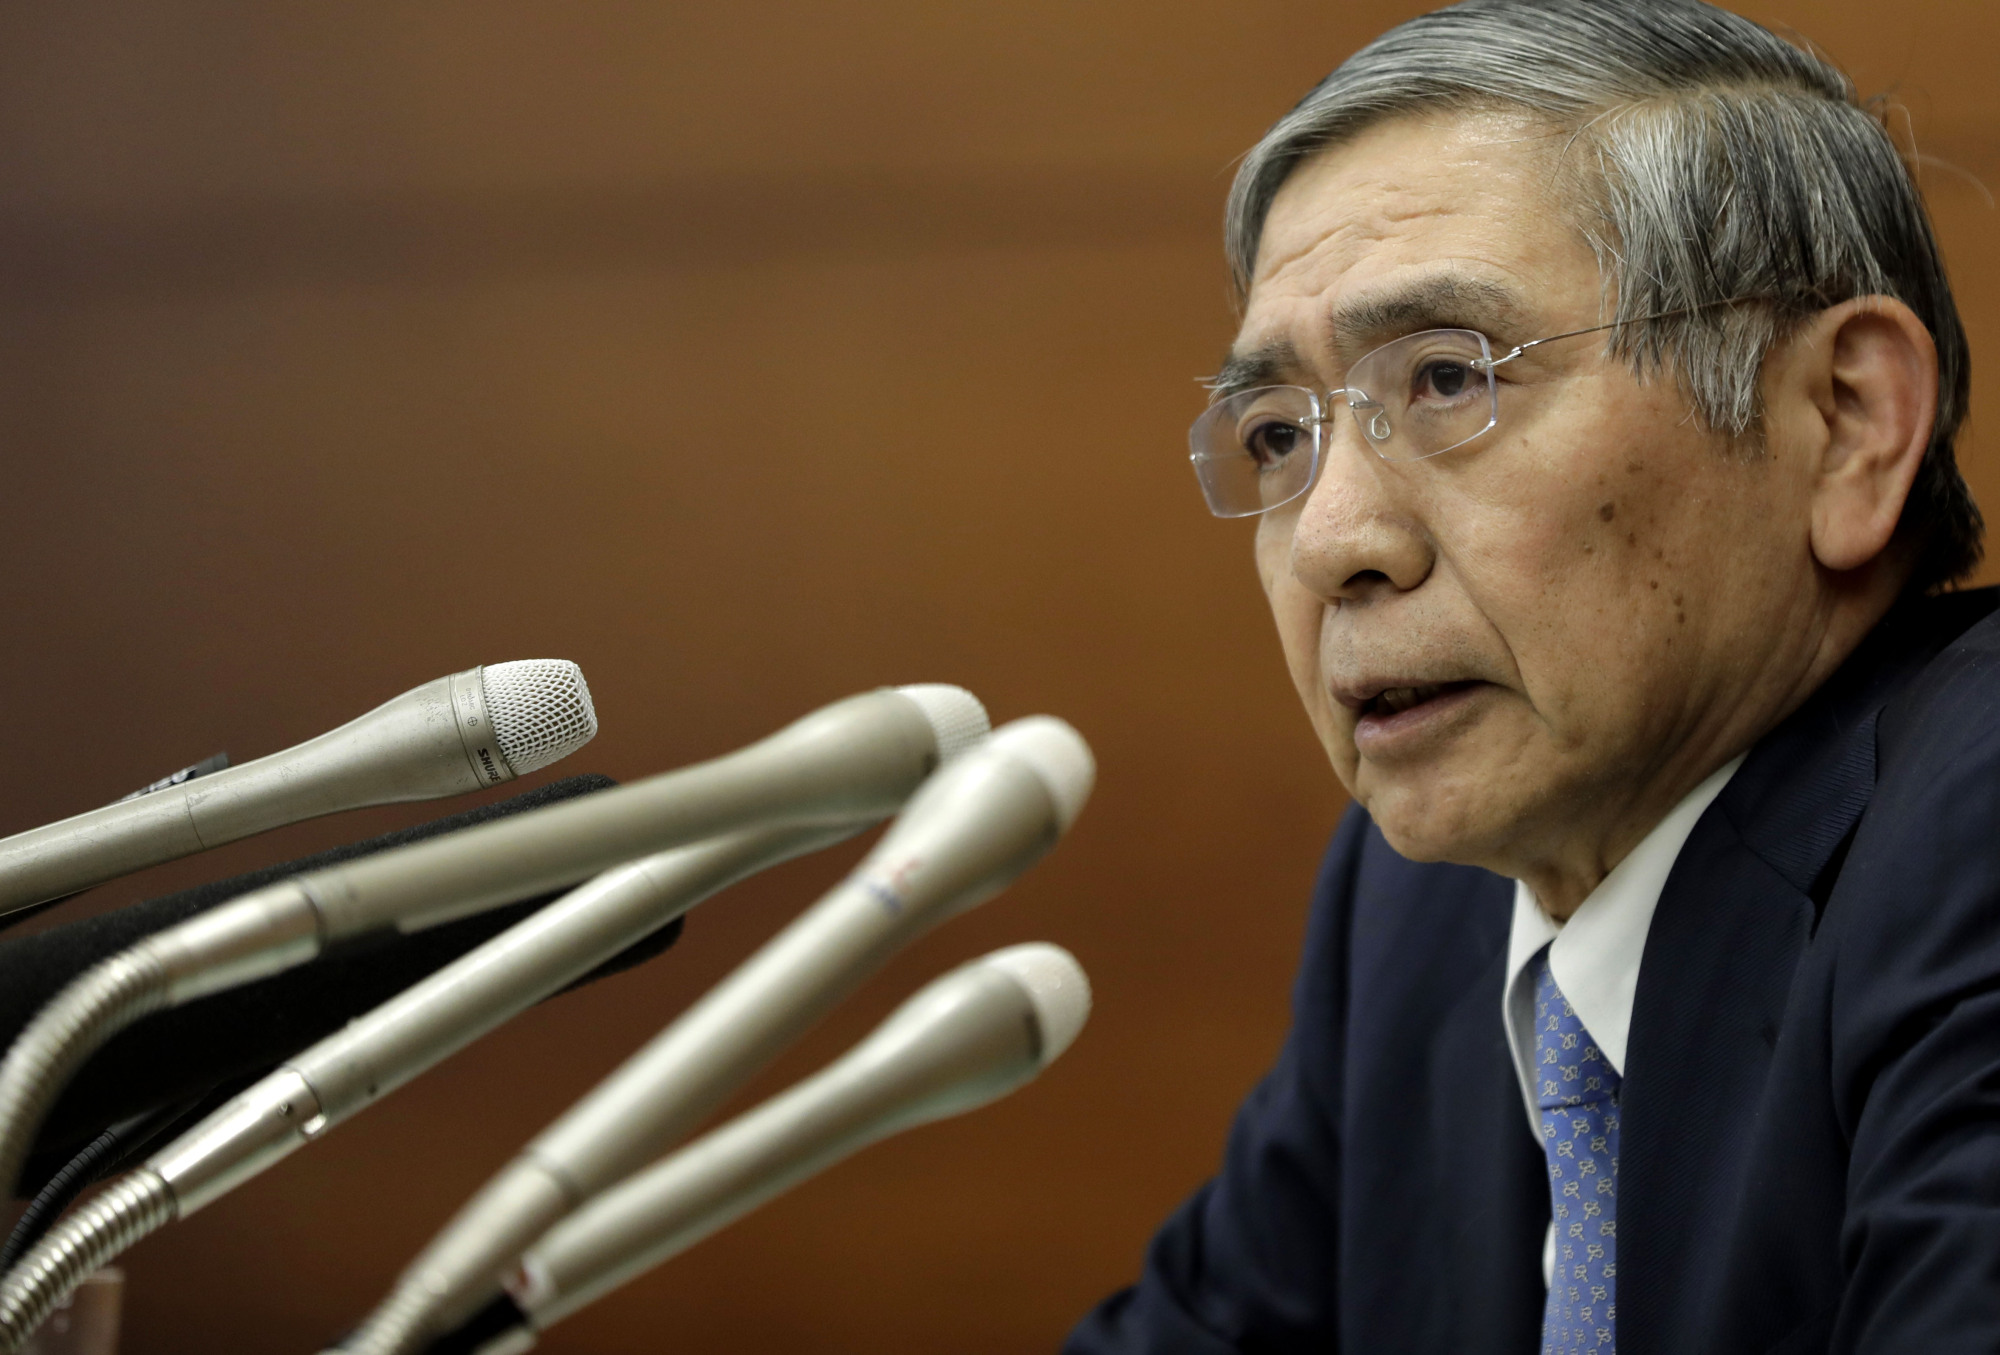 BOJ Gov. Haruhiko Kuroda will be the man to watch in 2018 if he's reappointed. | BLOOMBERG